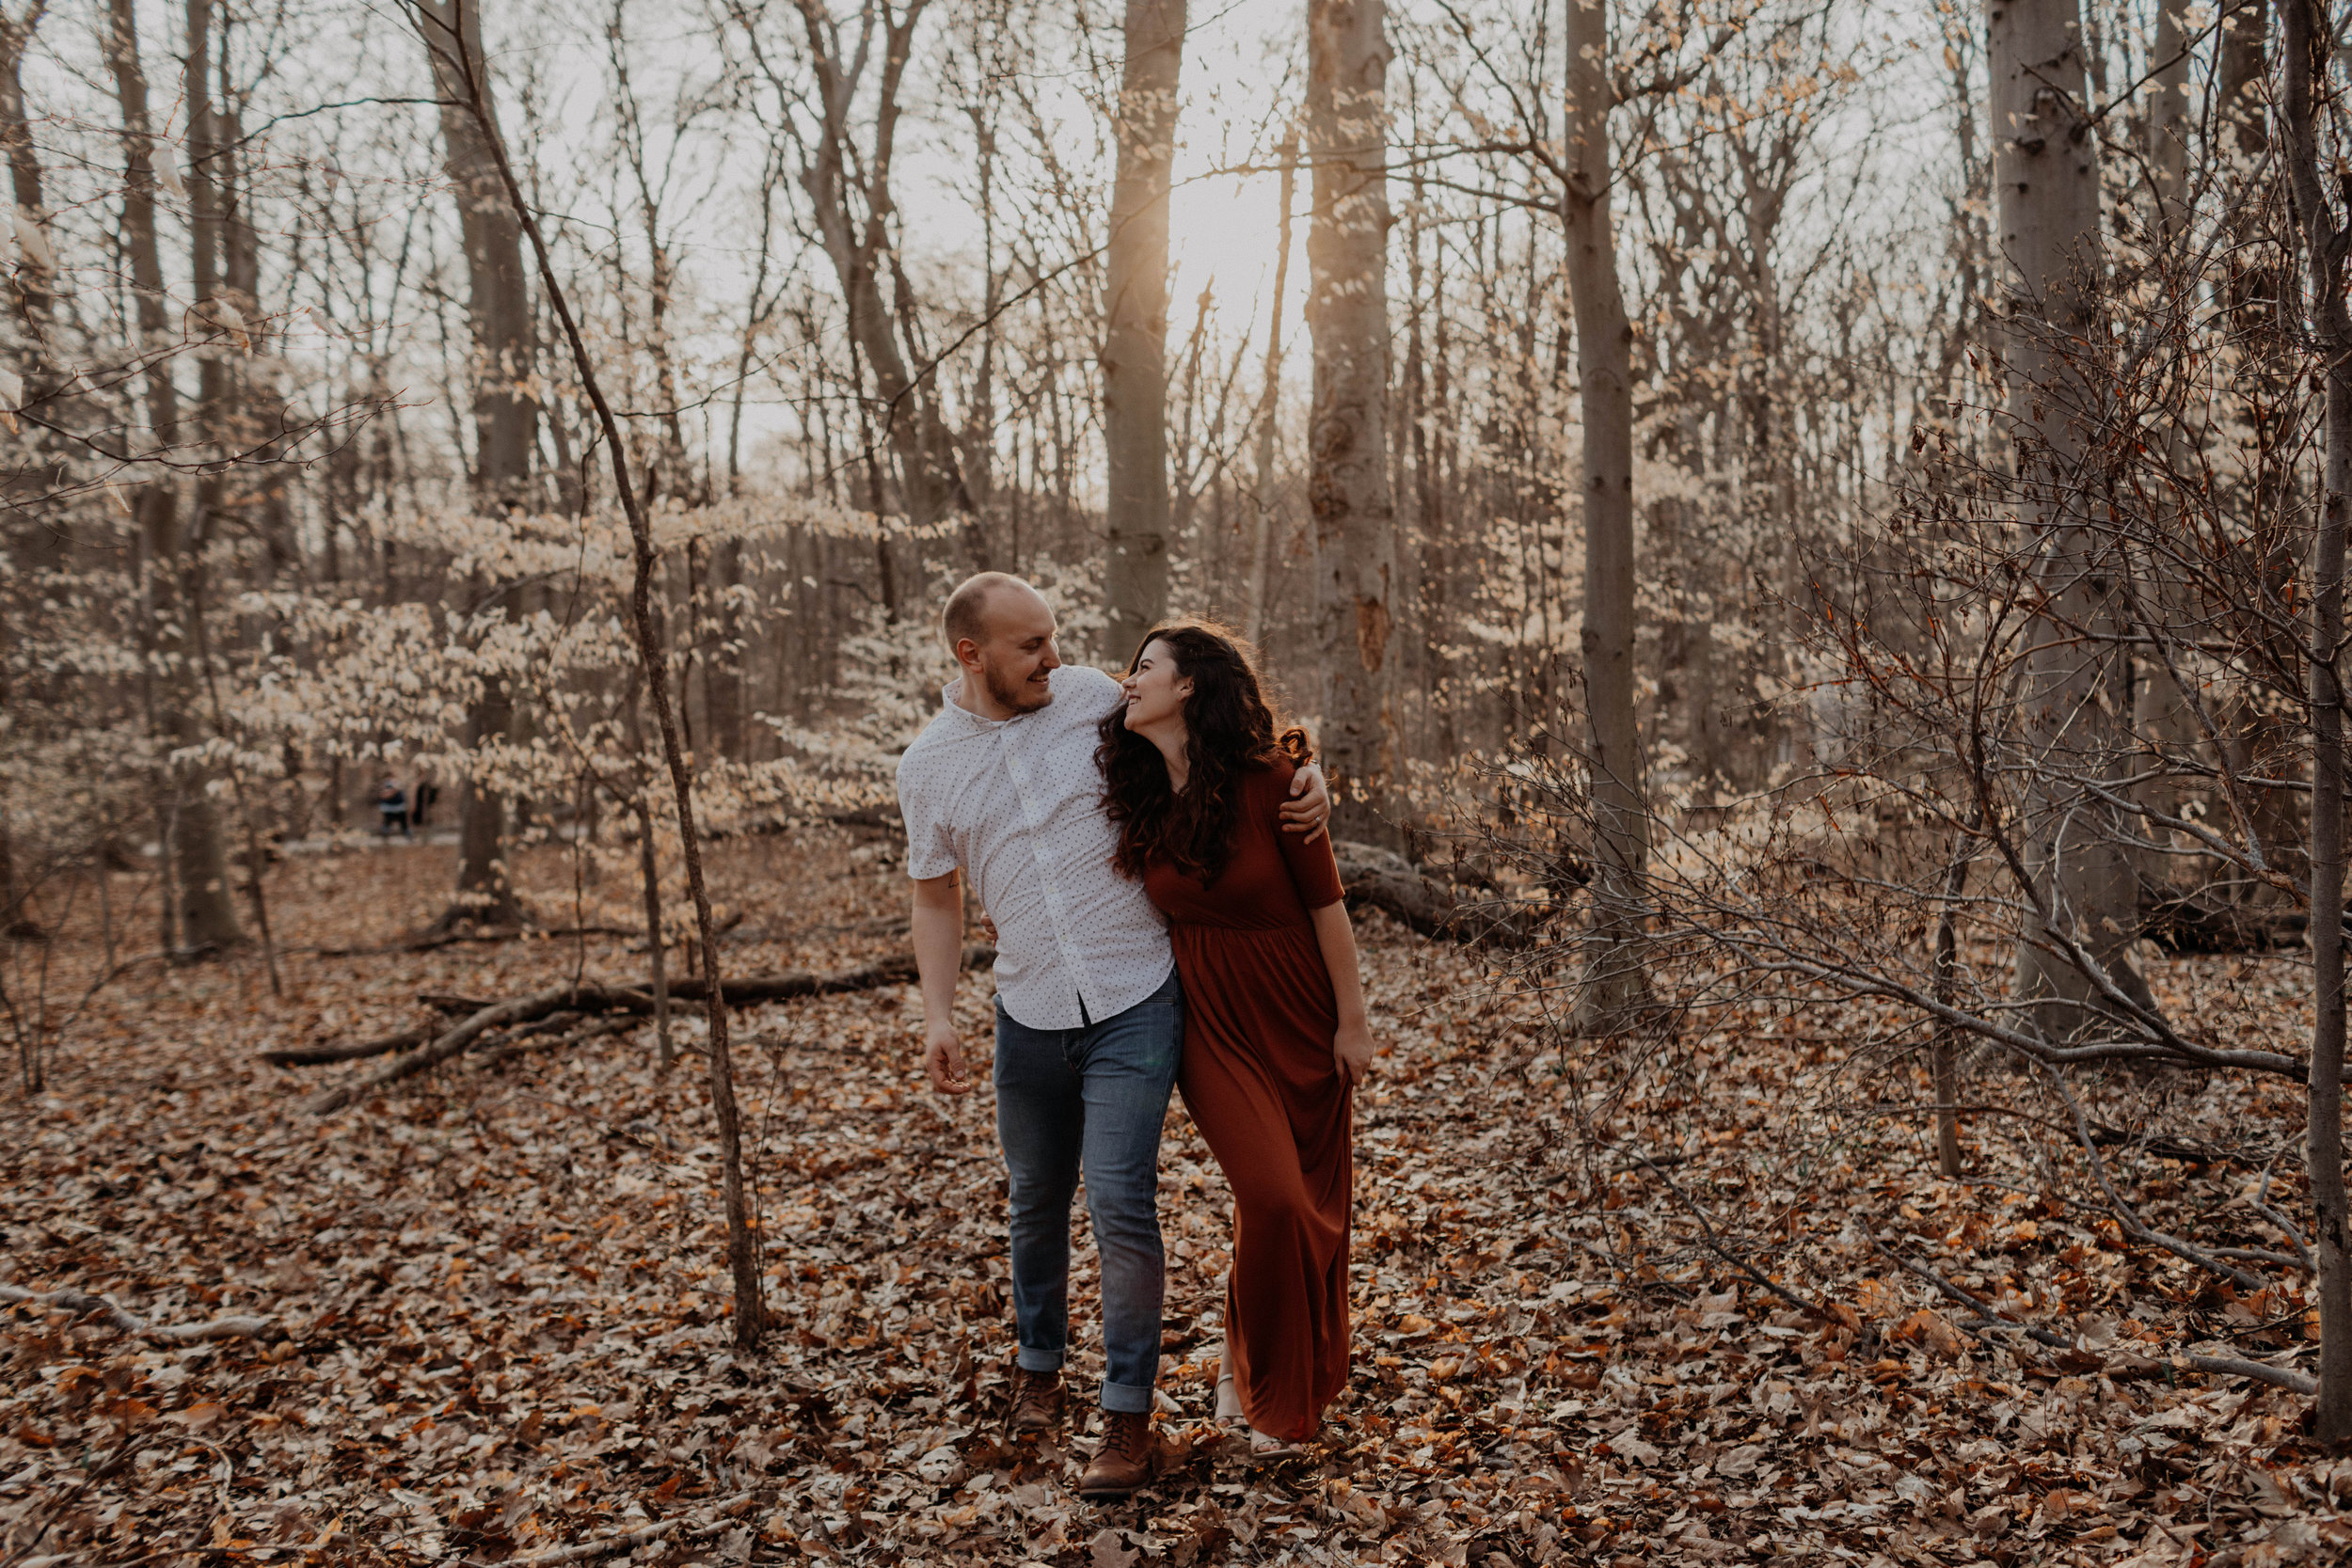 highbanks metro park columbus ohio wedding and couples session photographer33.jpg